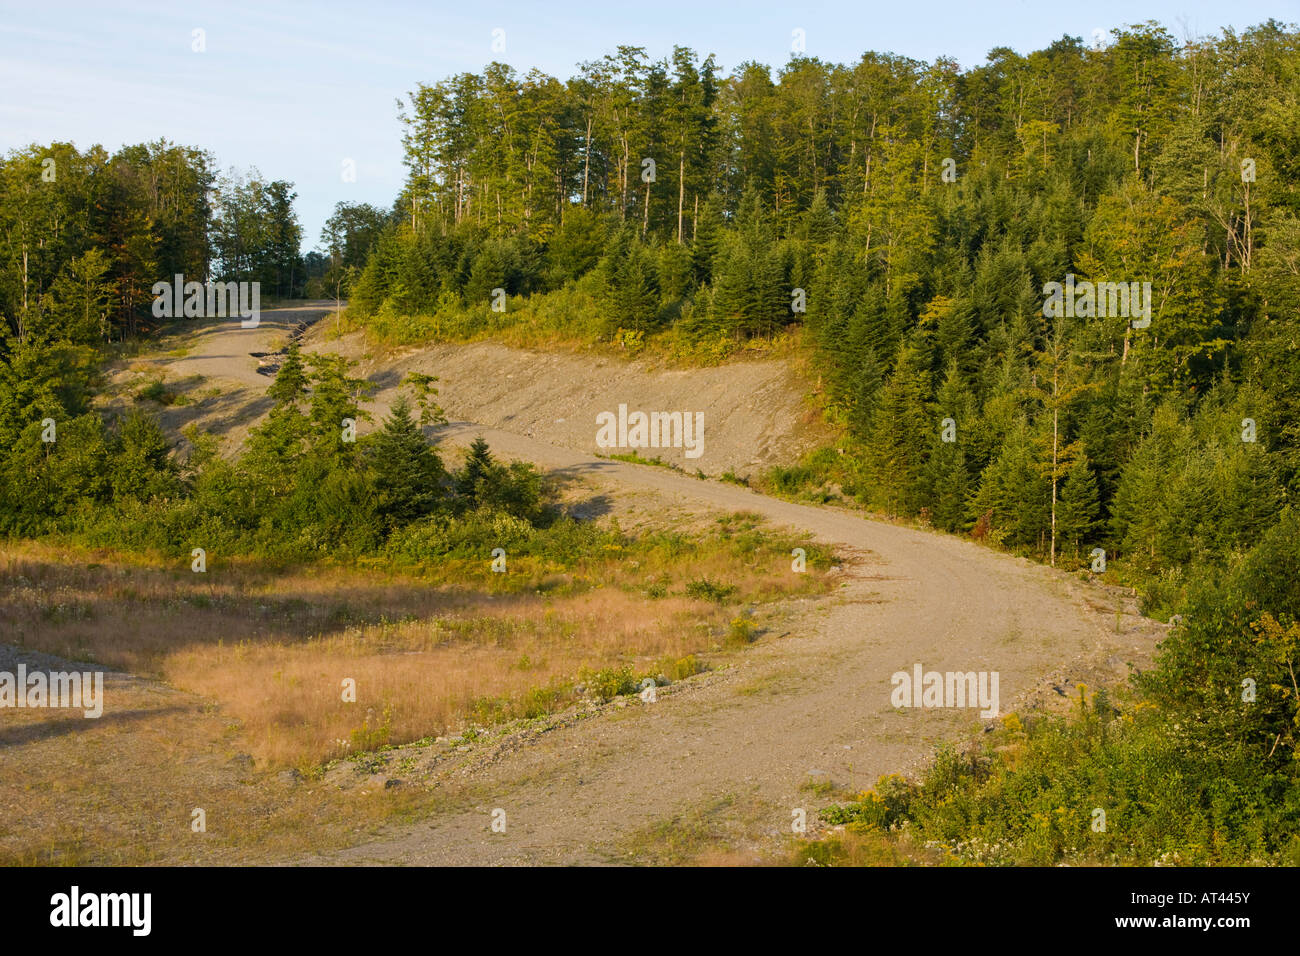 A dirt road on the Washburn Property in Clarksville, New Hampshire. - Stock Image